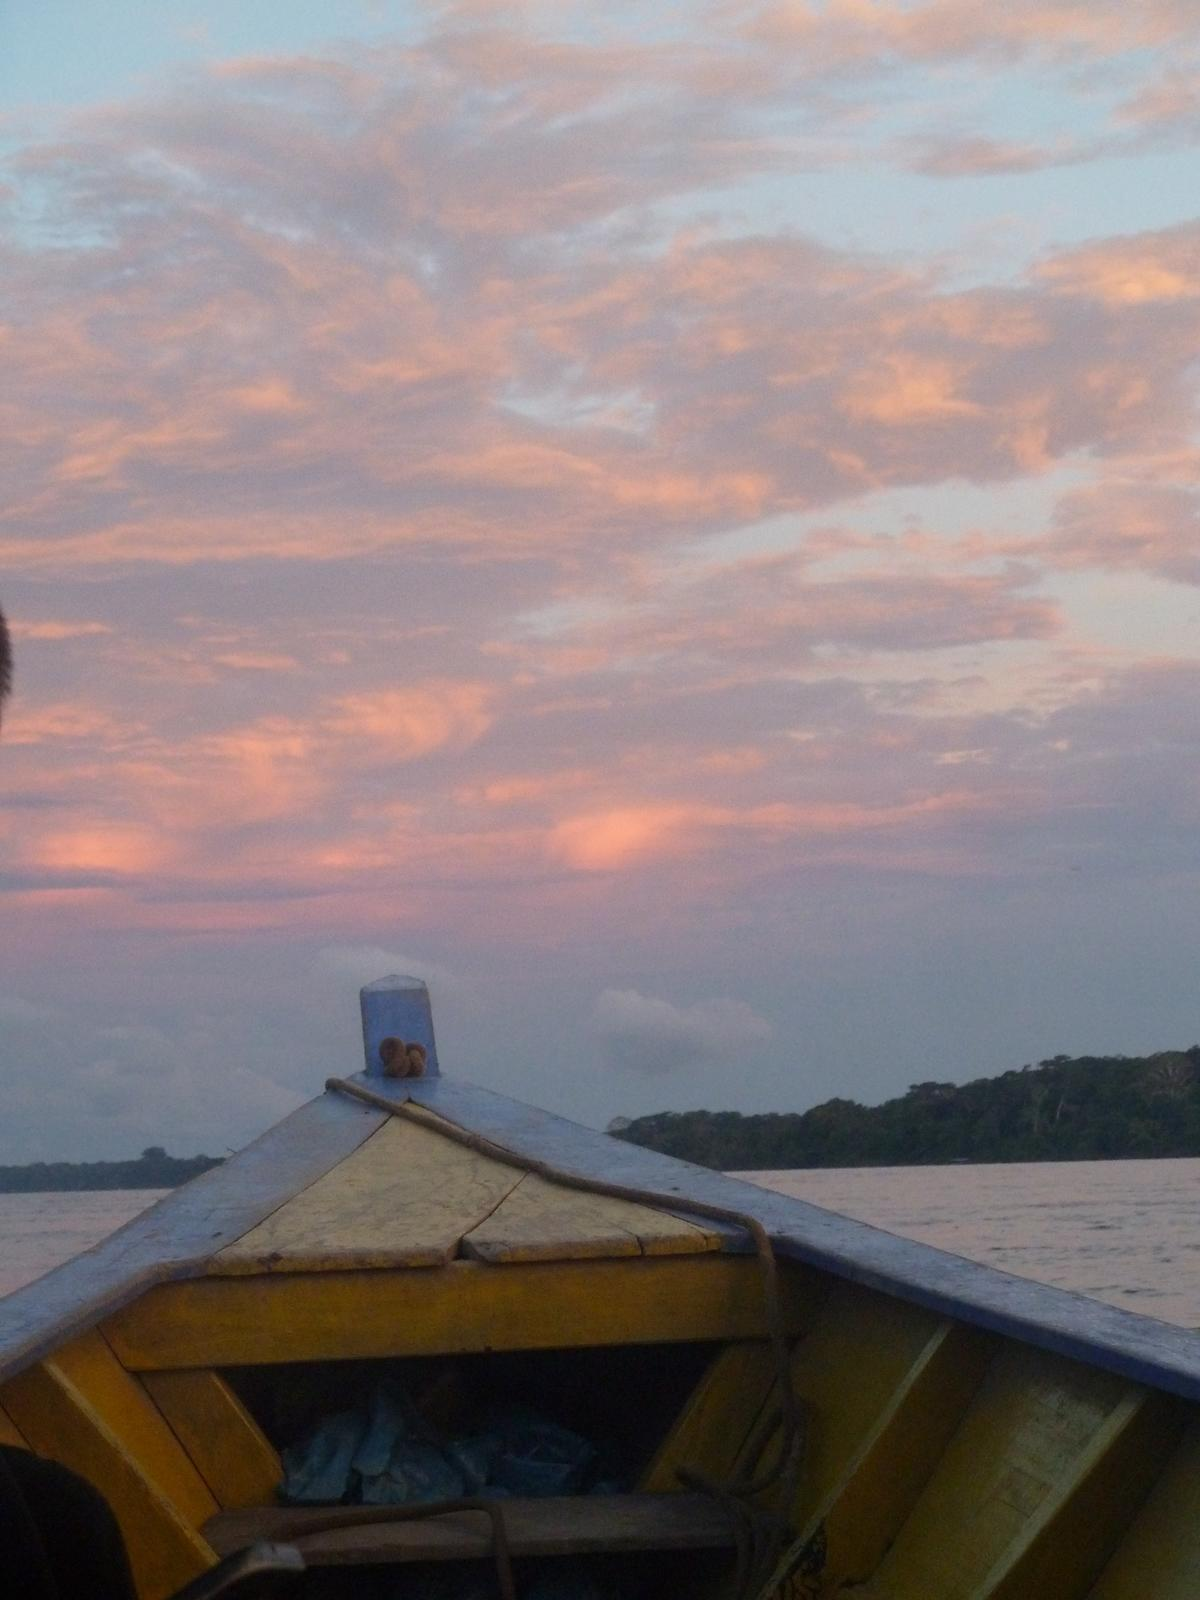 One of the many beautiful sunsets as seen from the boat